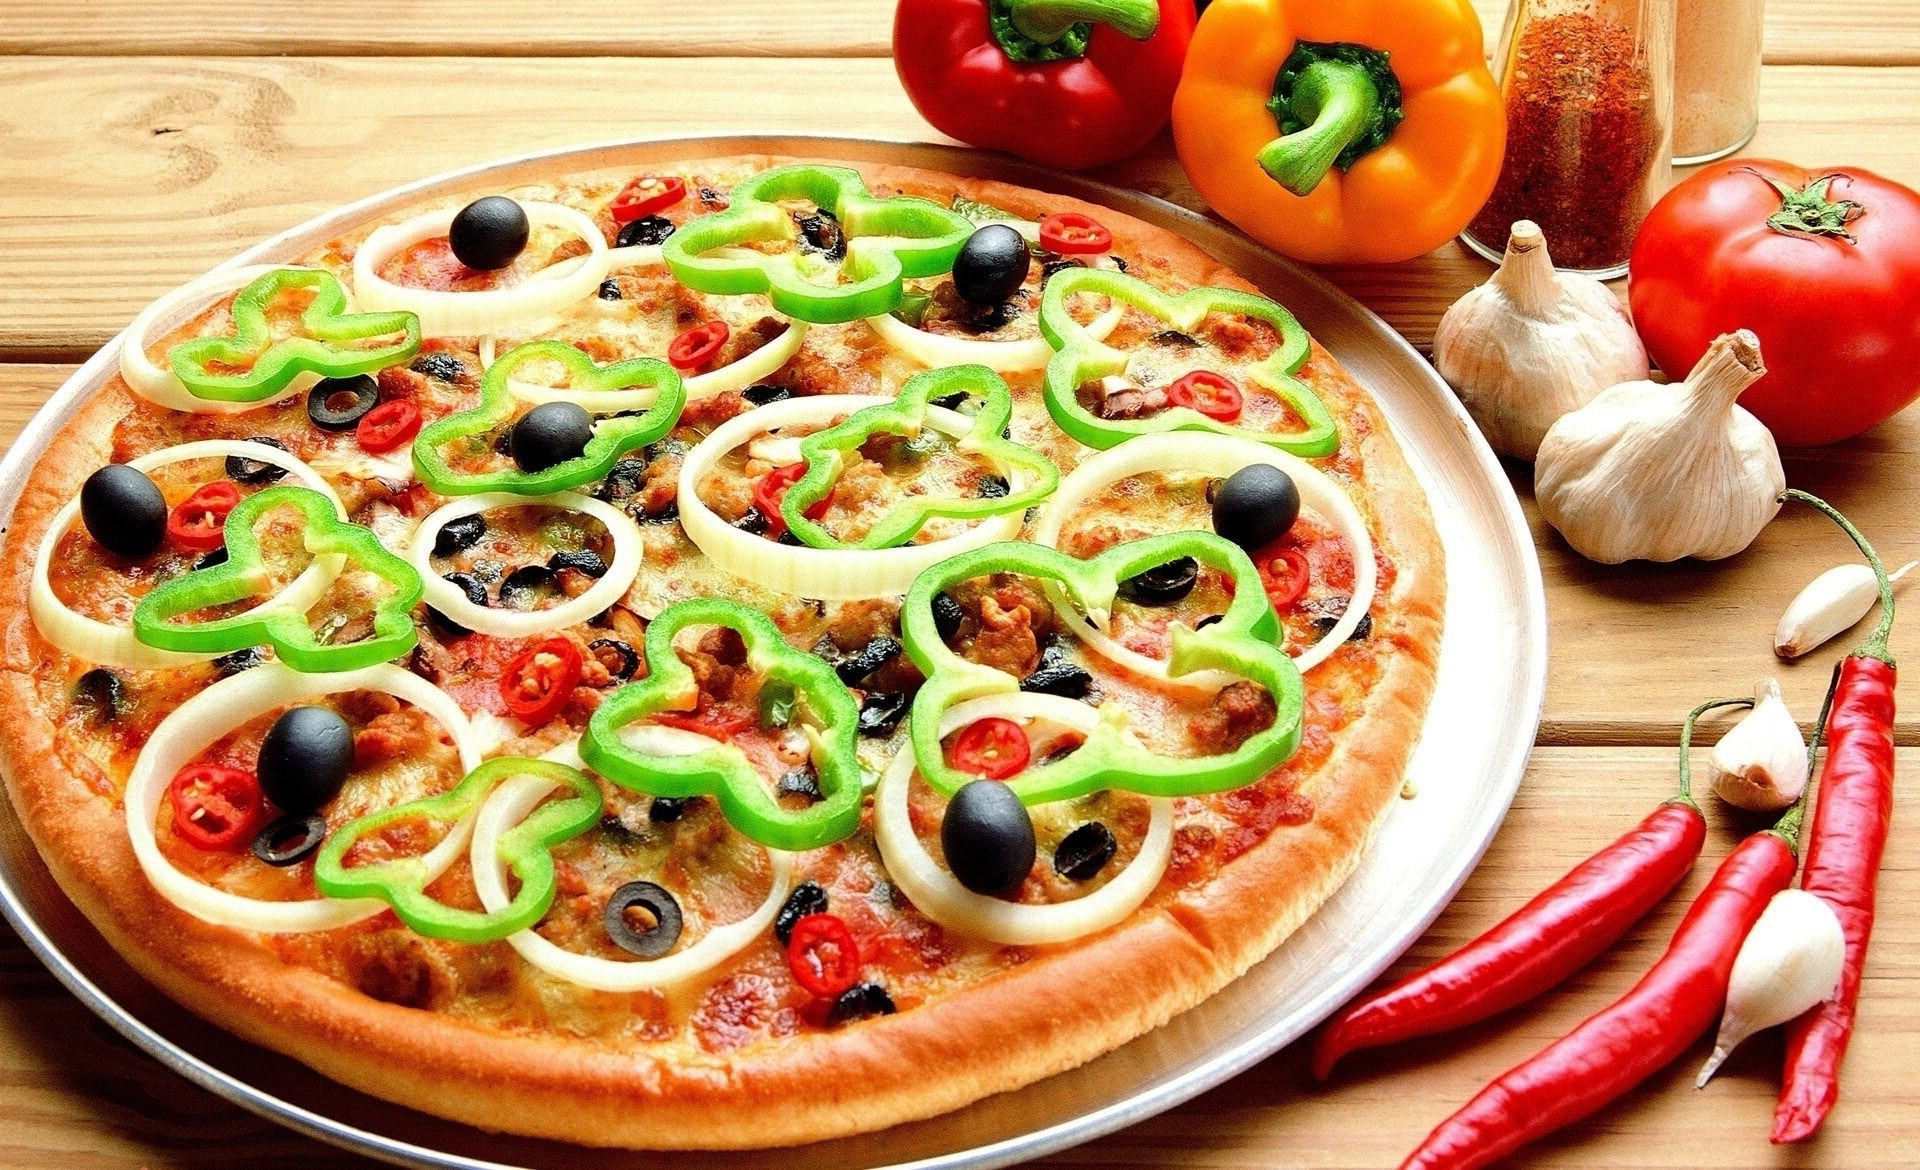 pizza food tomato vegetable cheese meal dinner lunch cuisine delicious refreshment pepper healthy tasty restaurant cooking epicure diet table